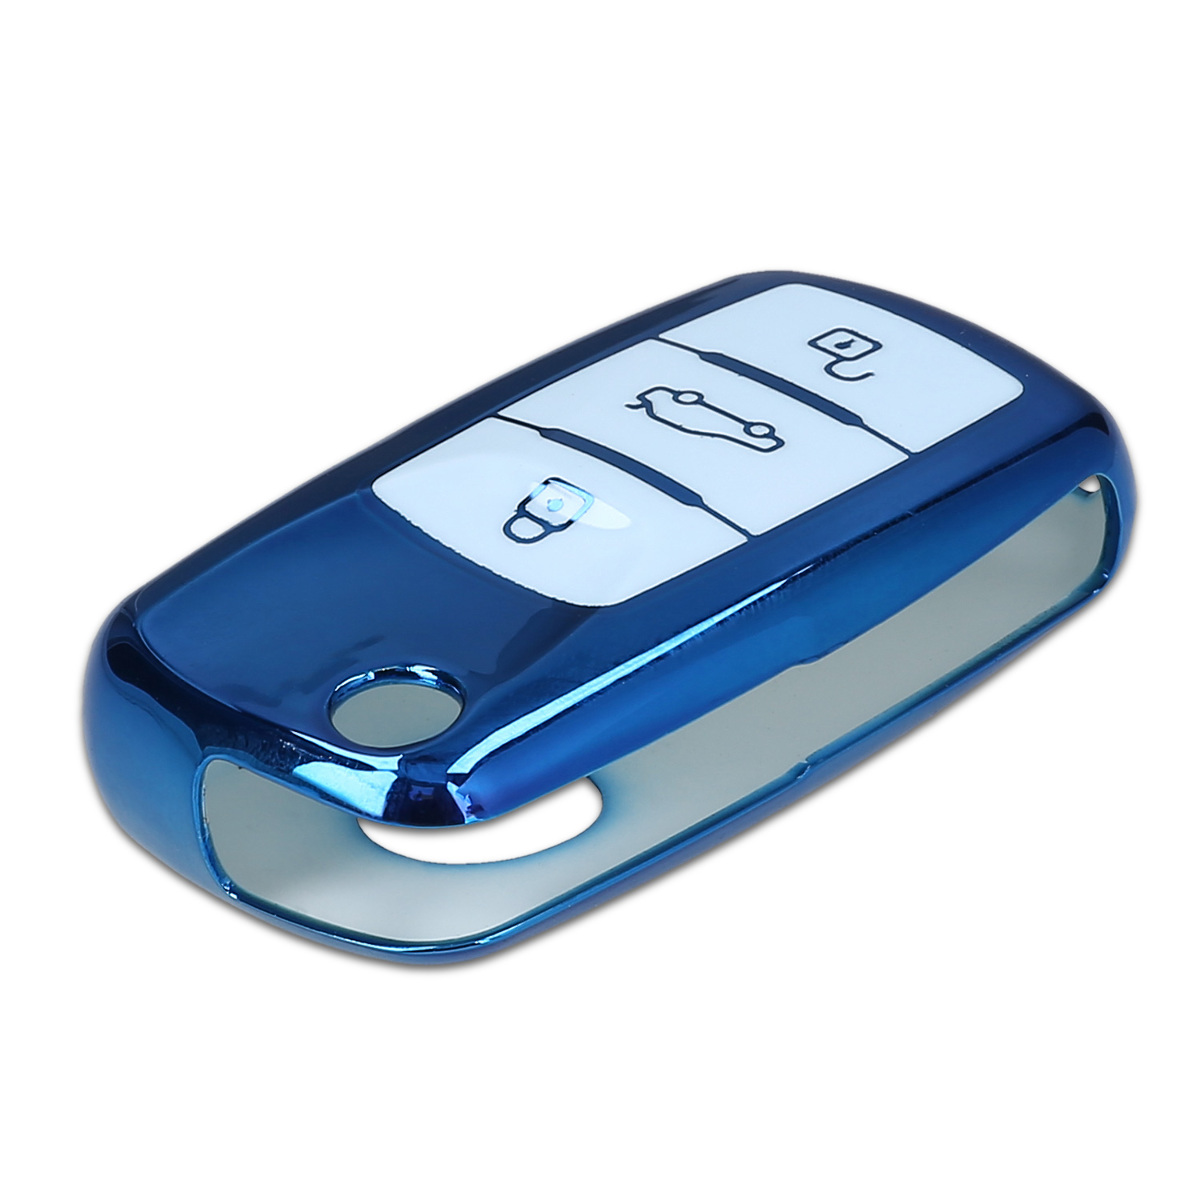 Blue High Gloss TPU Key Fob Cover with Varnished Buttons for VW Skoda SEAT 3 Button Car Key kwmobile Car Key Cover for VW Skoda Seat